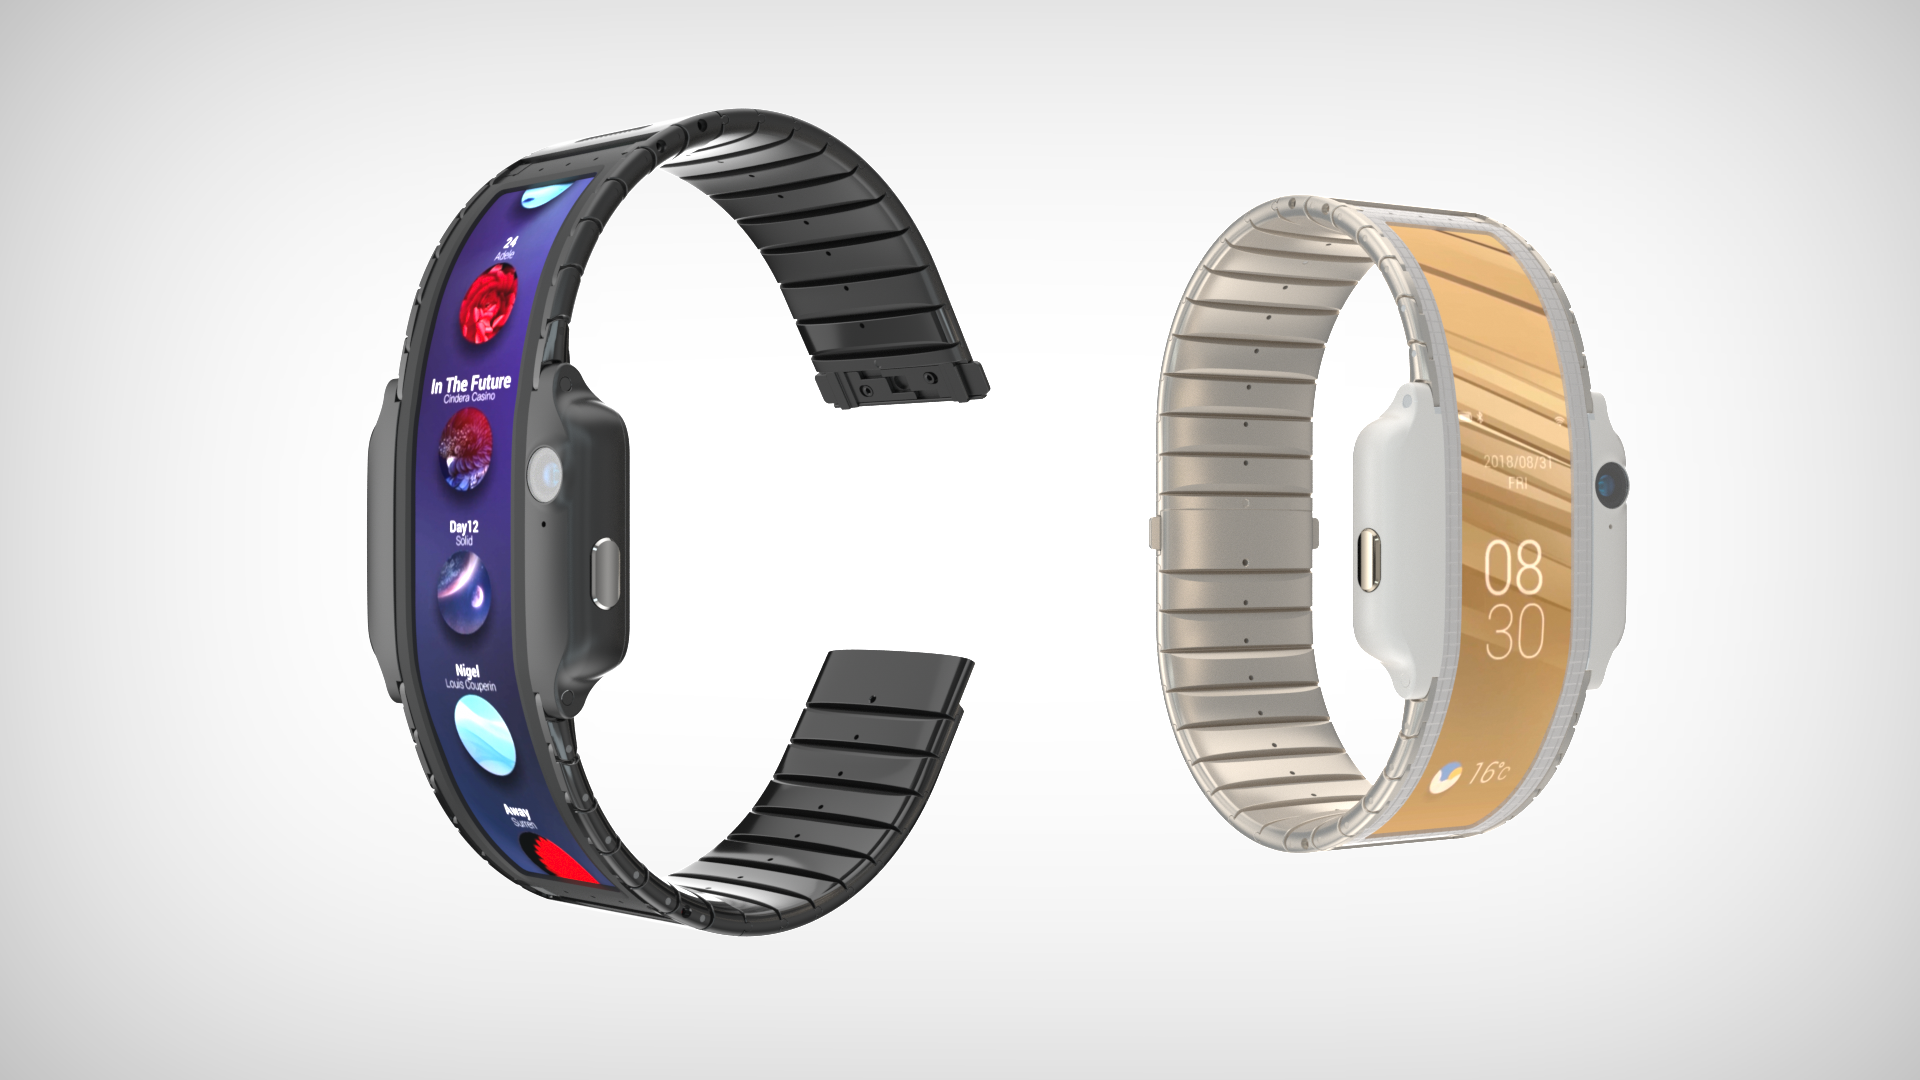 Look At This Wacky Smartphone Watch